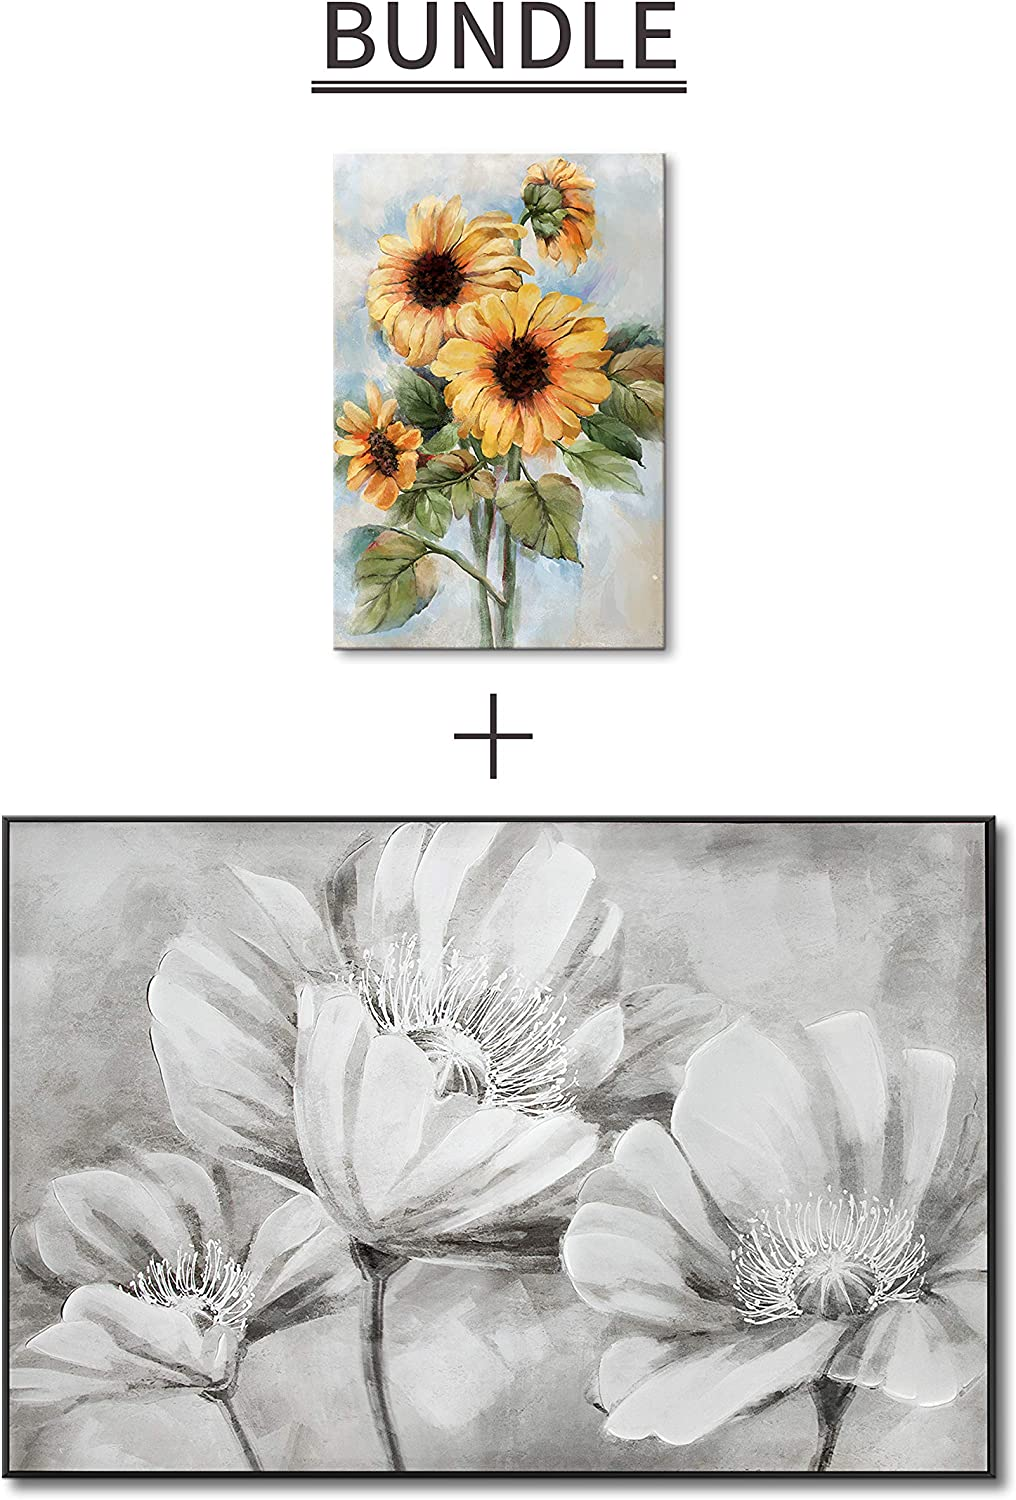 Wall Decor Lamplig Flowers Oil Paintings On Canvas Large Floral Framed Wall Art Black And White Hand Painted Pictures Gray Poppies Prints Modern Artwork Home Decor For Living Room Bedroom Office 48x32